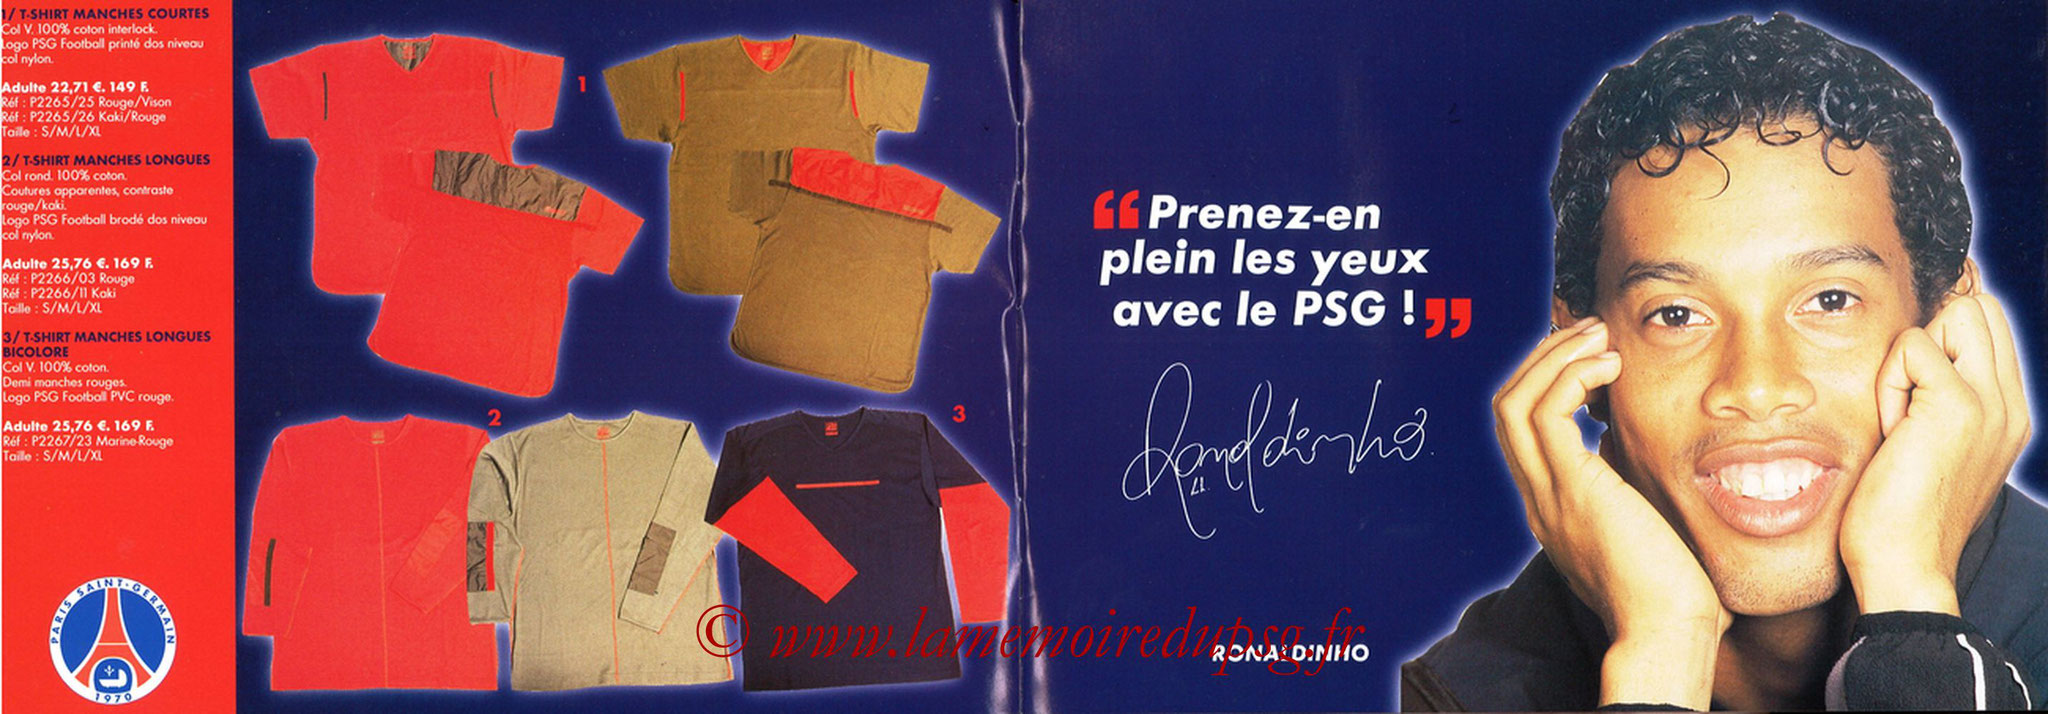 Catalogue PSG - 2001-02 - Noêl - Pages 04 et 05